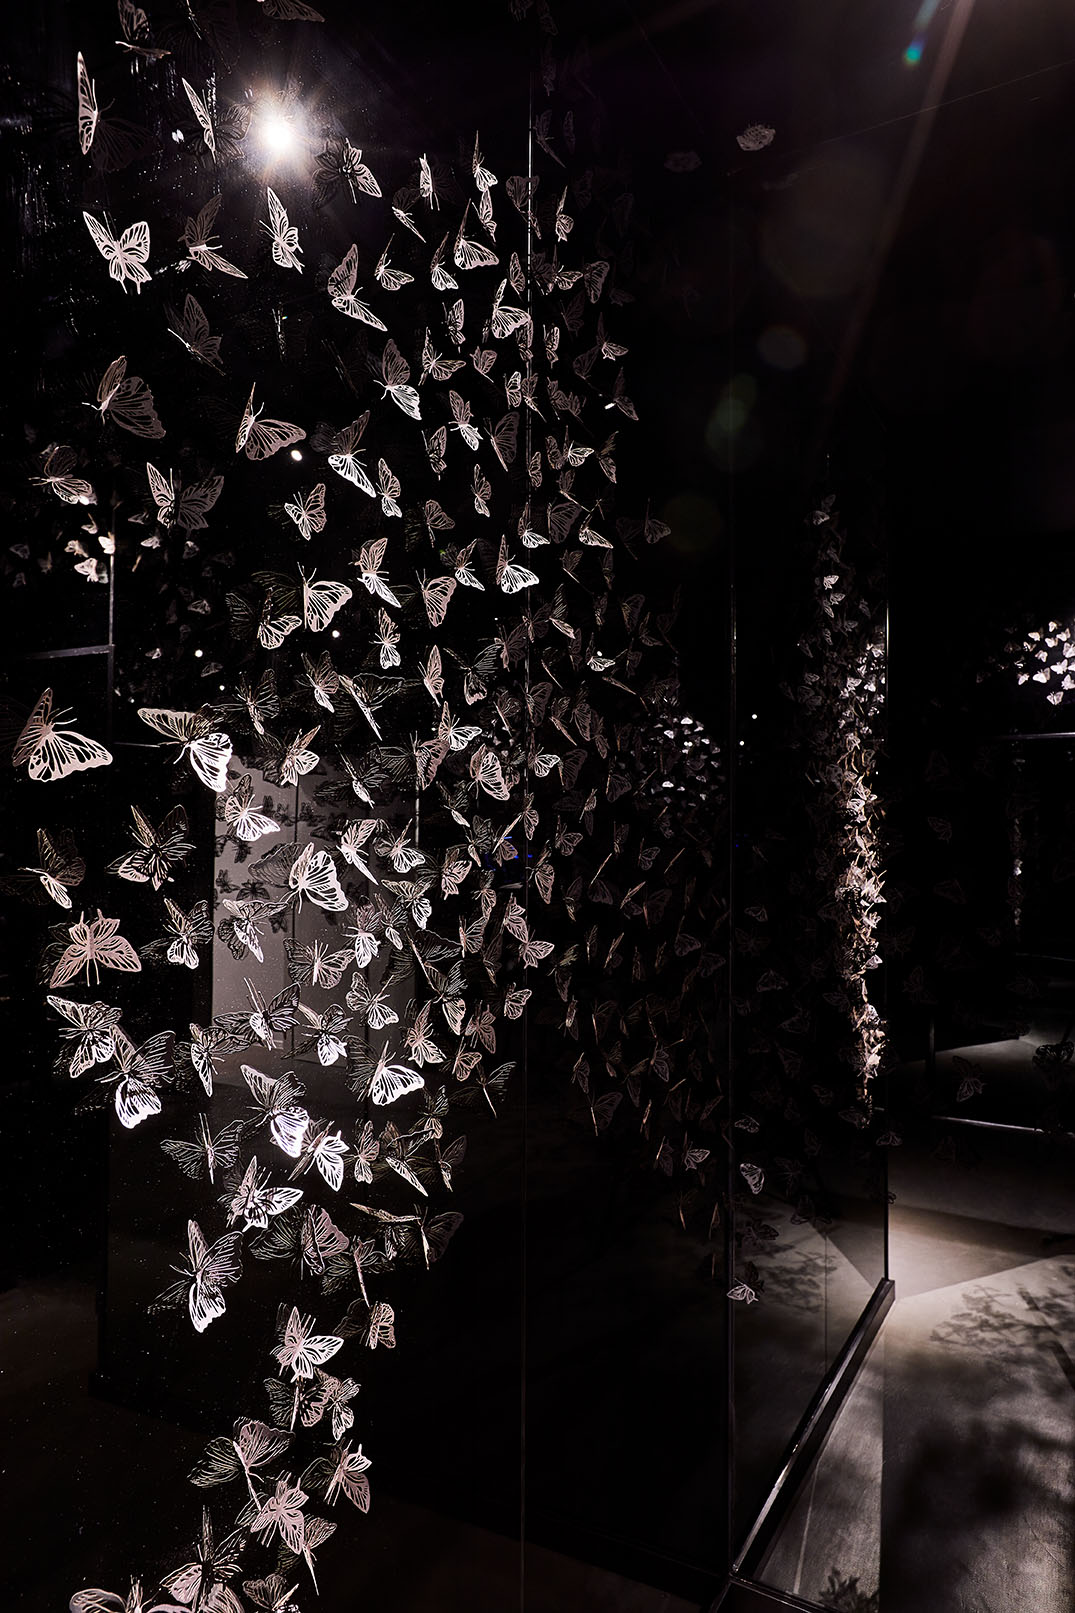 The butterfly room at restaurant the alchemist in Copenhagen.